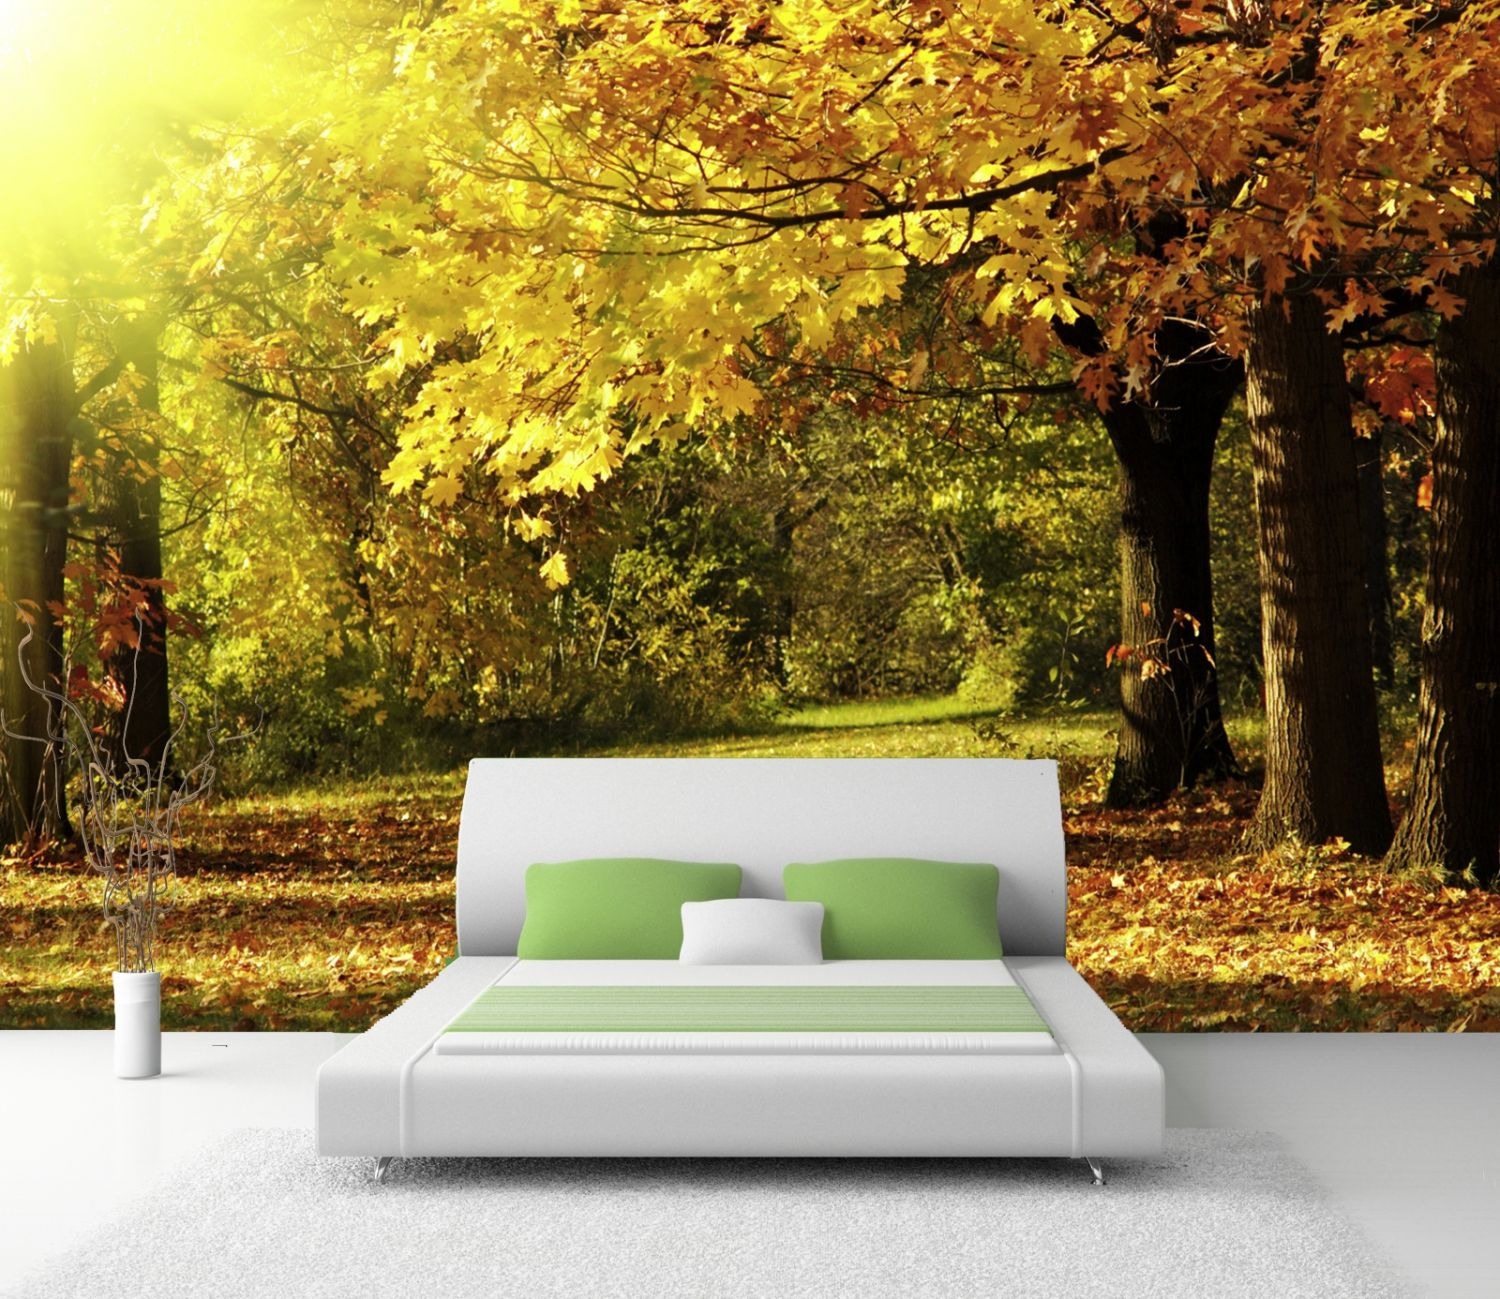 xxl poster fototapete tapete vlies natur herbst im wald ebay. Black Bedroom Furniture Sets. Home Design Ideas